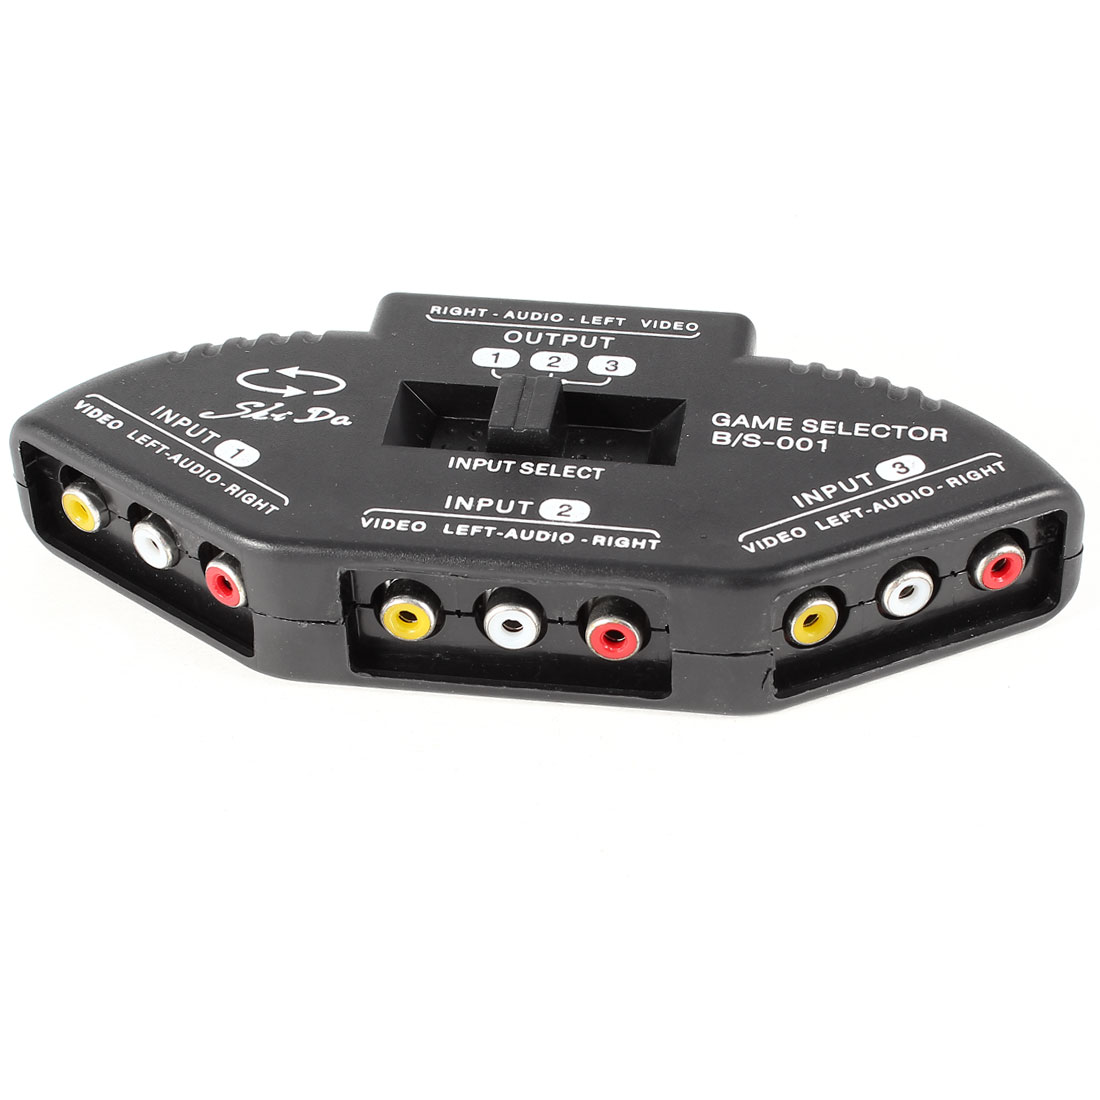 Unique Bargains Black M/M RCA Cable 3-Way Audio Video AV RCA Switch Selector Multi Box Splitter